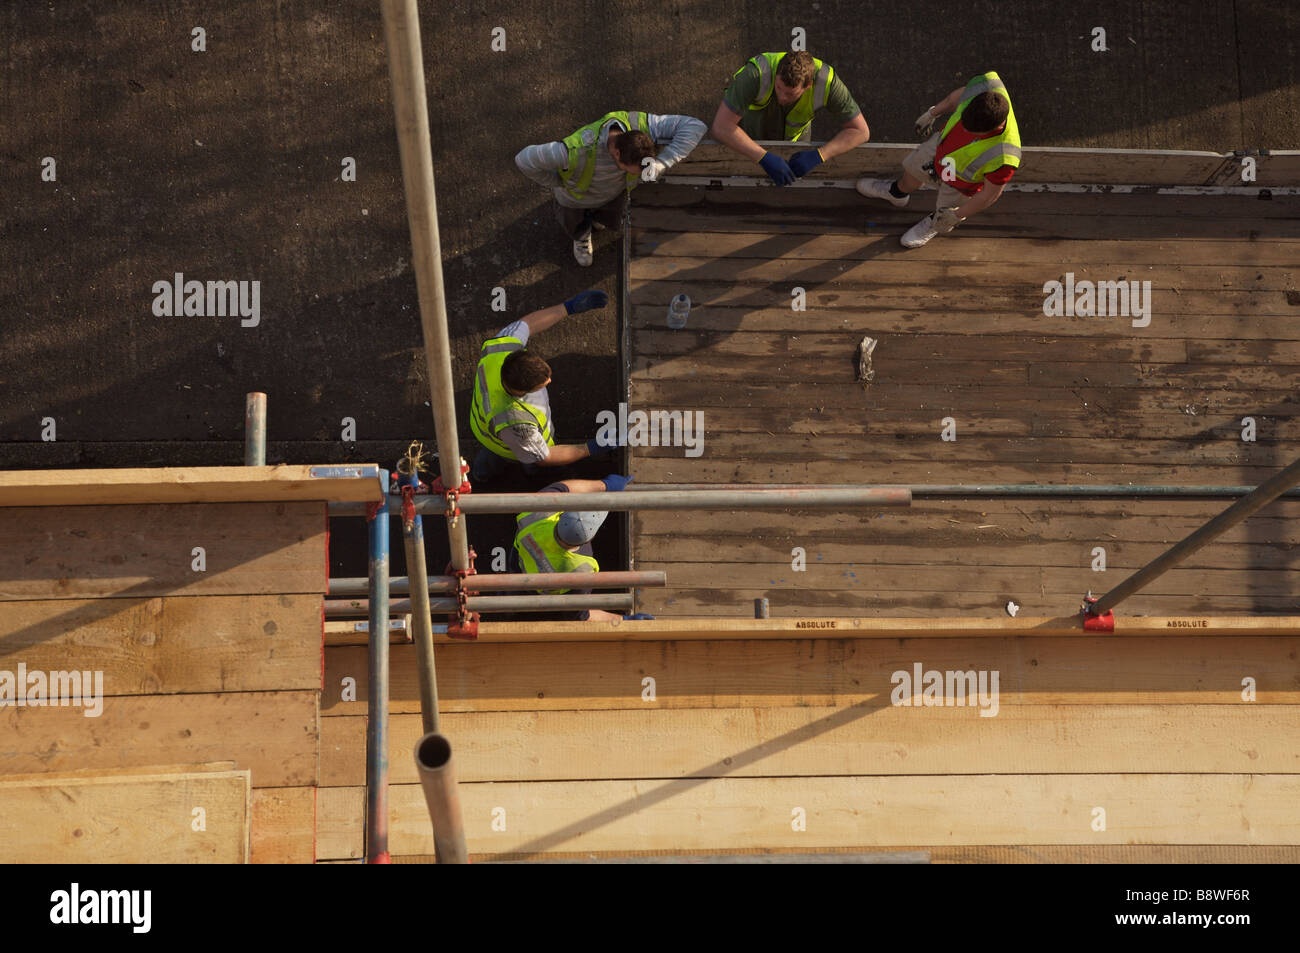 Aerial view of 5 Workmen discussing on a building site, underneath a wooden platform with scaffolding around the - Stock Image